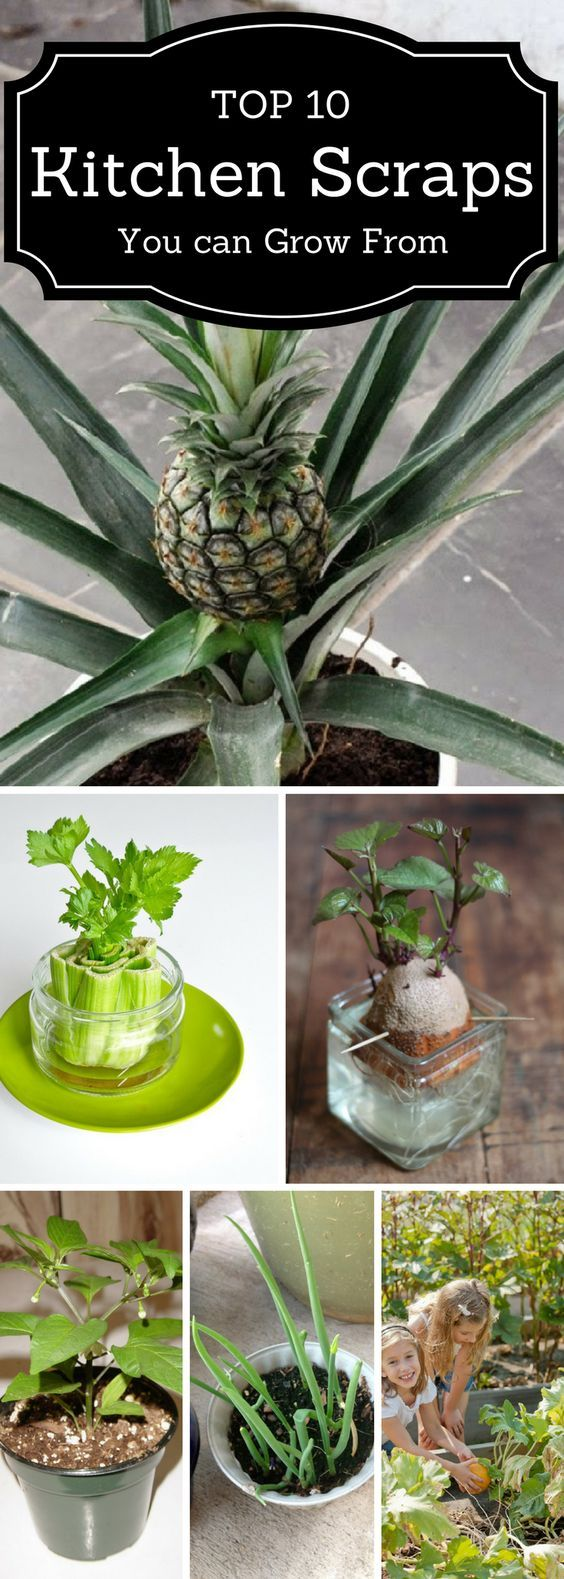 DIY. Use the leftover scrapes of food to grow new food right in your own kitchen!